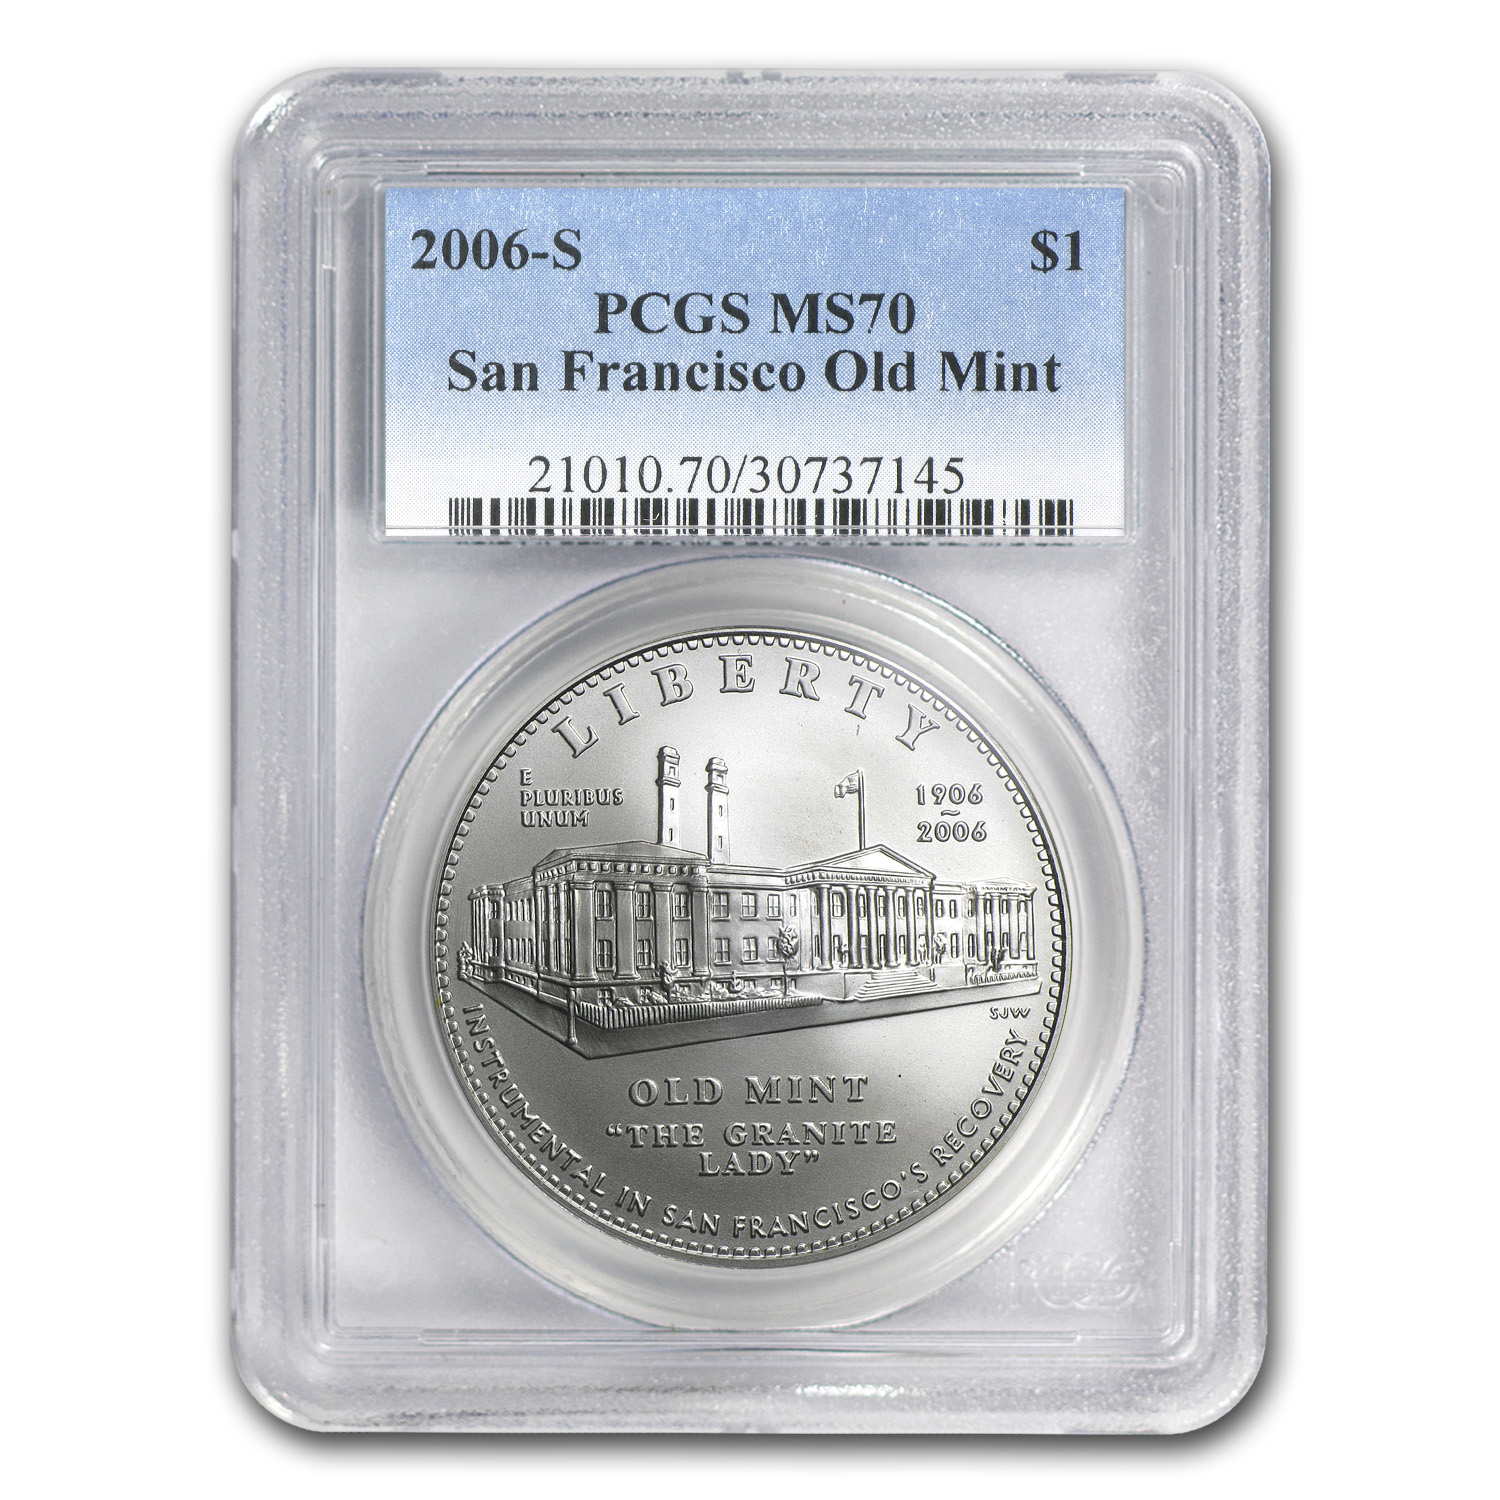 2006-S San Francisco Old Mint $1 Silver Commem MS-70 PCGS